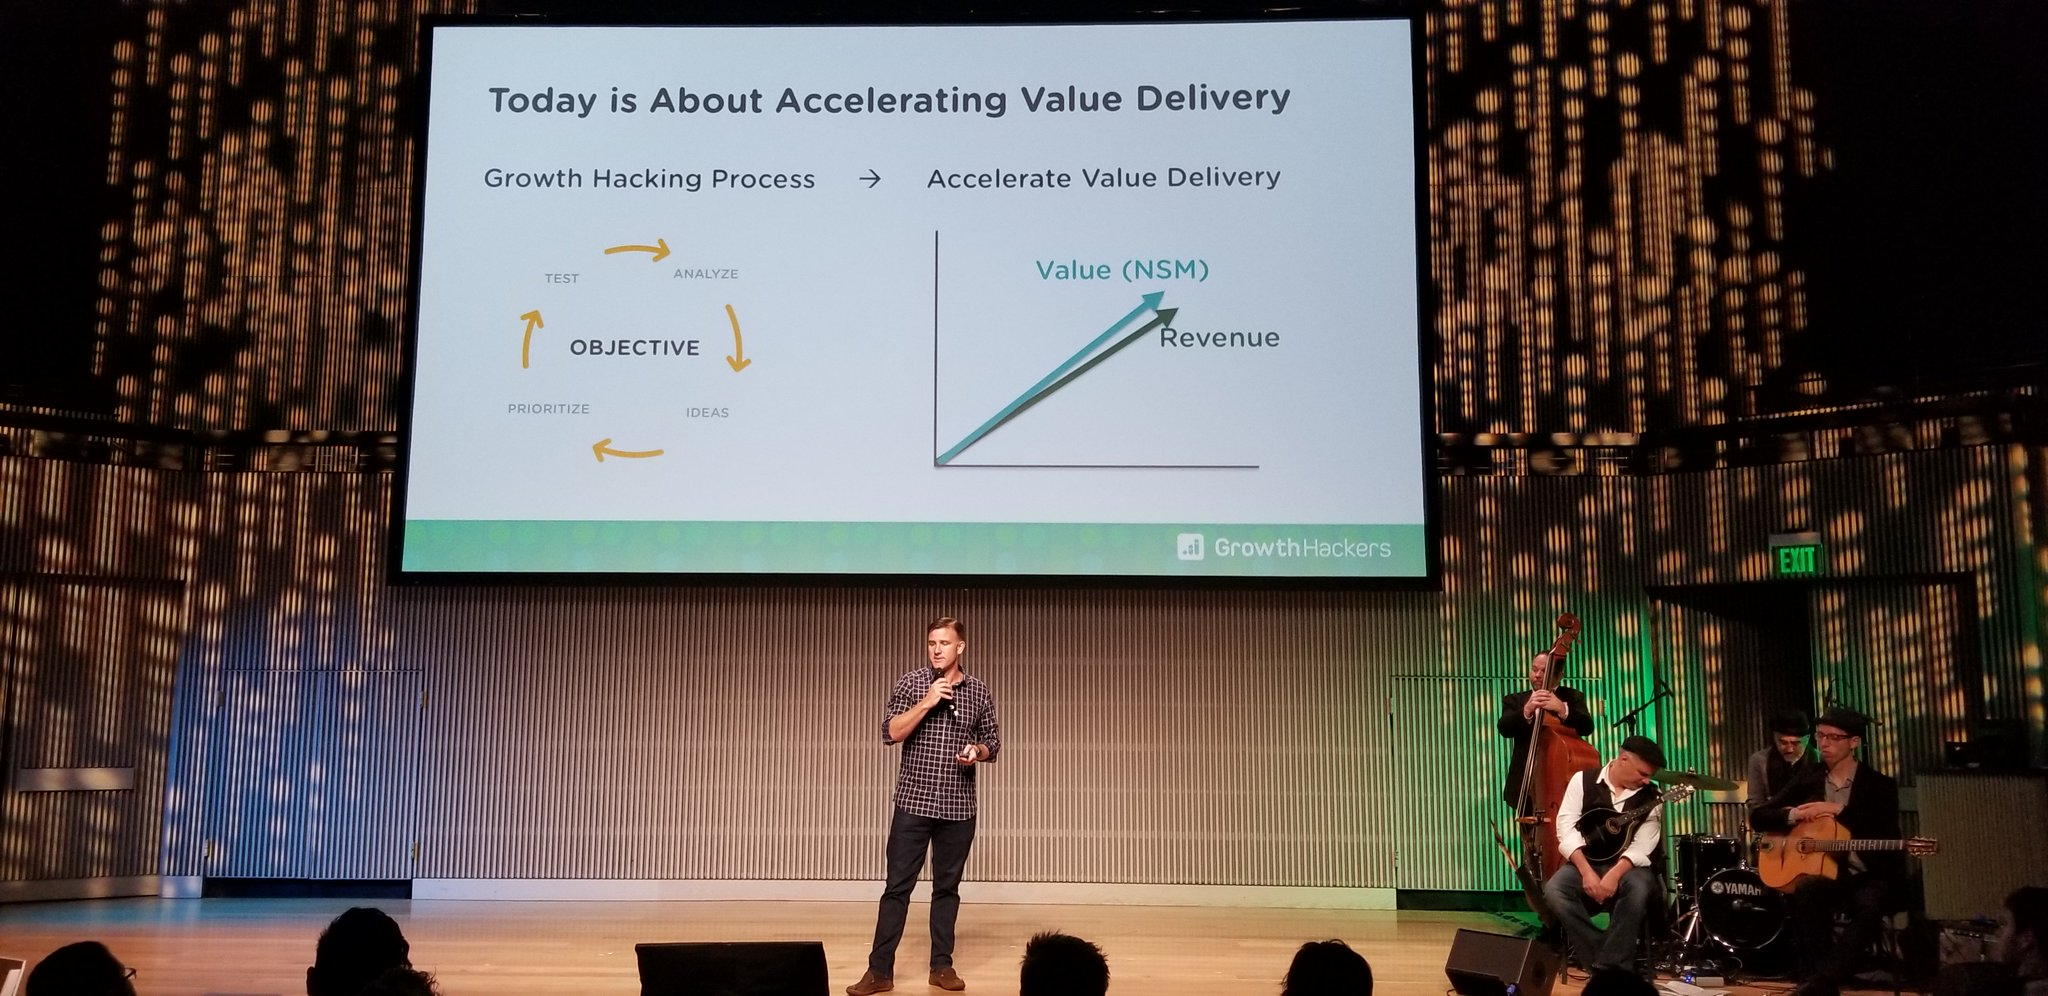 Highlights from #GHConf19 so far: @SeanEllis on #growthhacking and a preview of what we're learning today with @GrowthHackers! https://t.co/FFAhPFyoSO